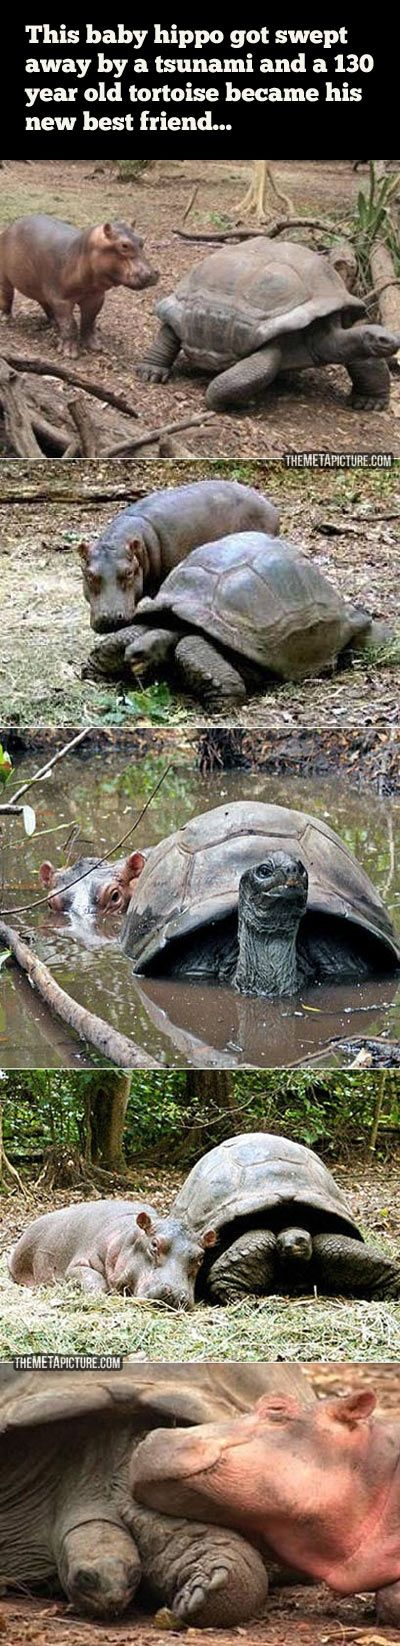 Relationships are a key part of survival and balance in any ecosystem. Though unusual, this hippo and tortoise would seem to have chosen a relationship of mutual support and companionship.   Awe seems like an odd pair that just works.